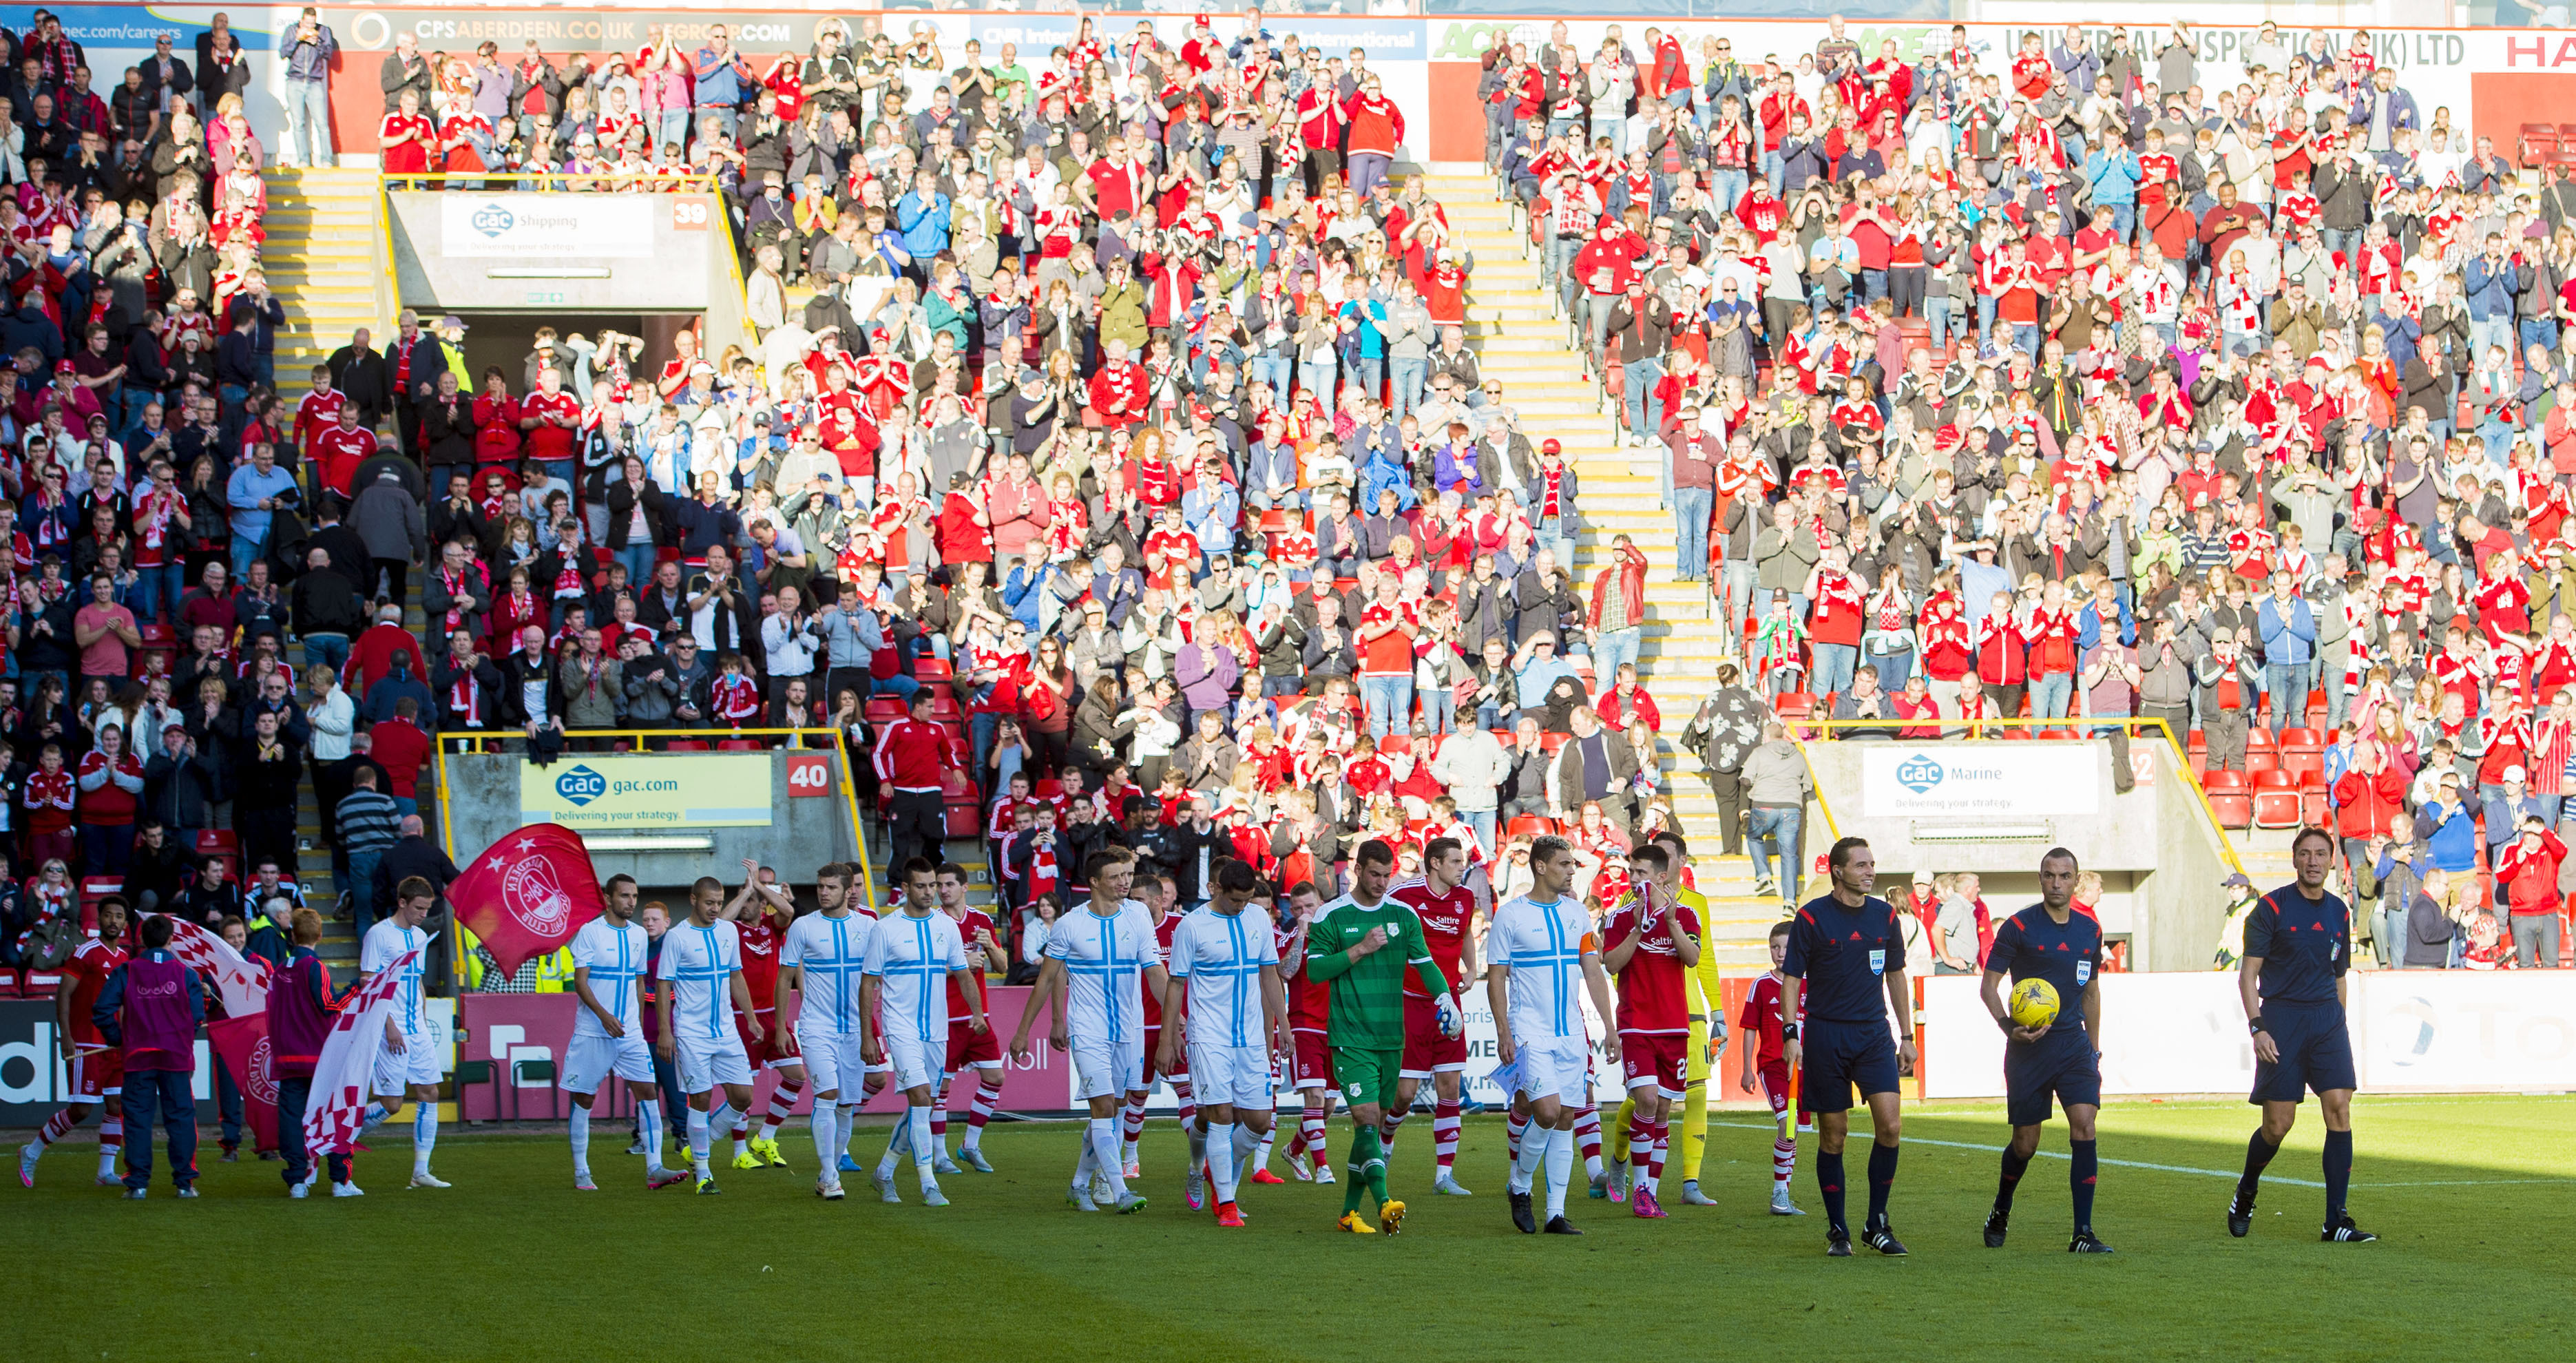 Players head out to the pitch for kick-off.